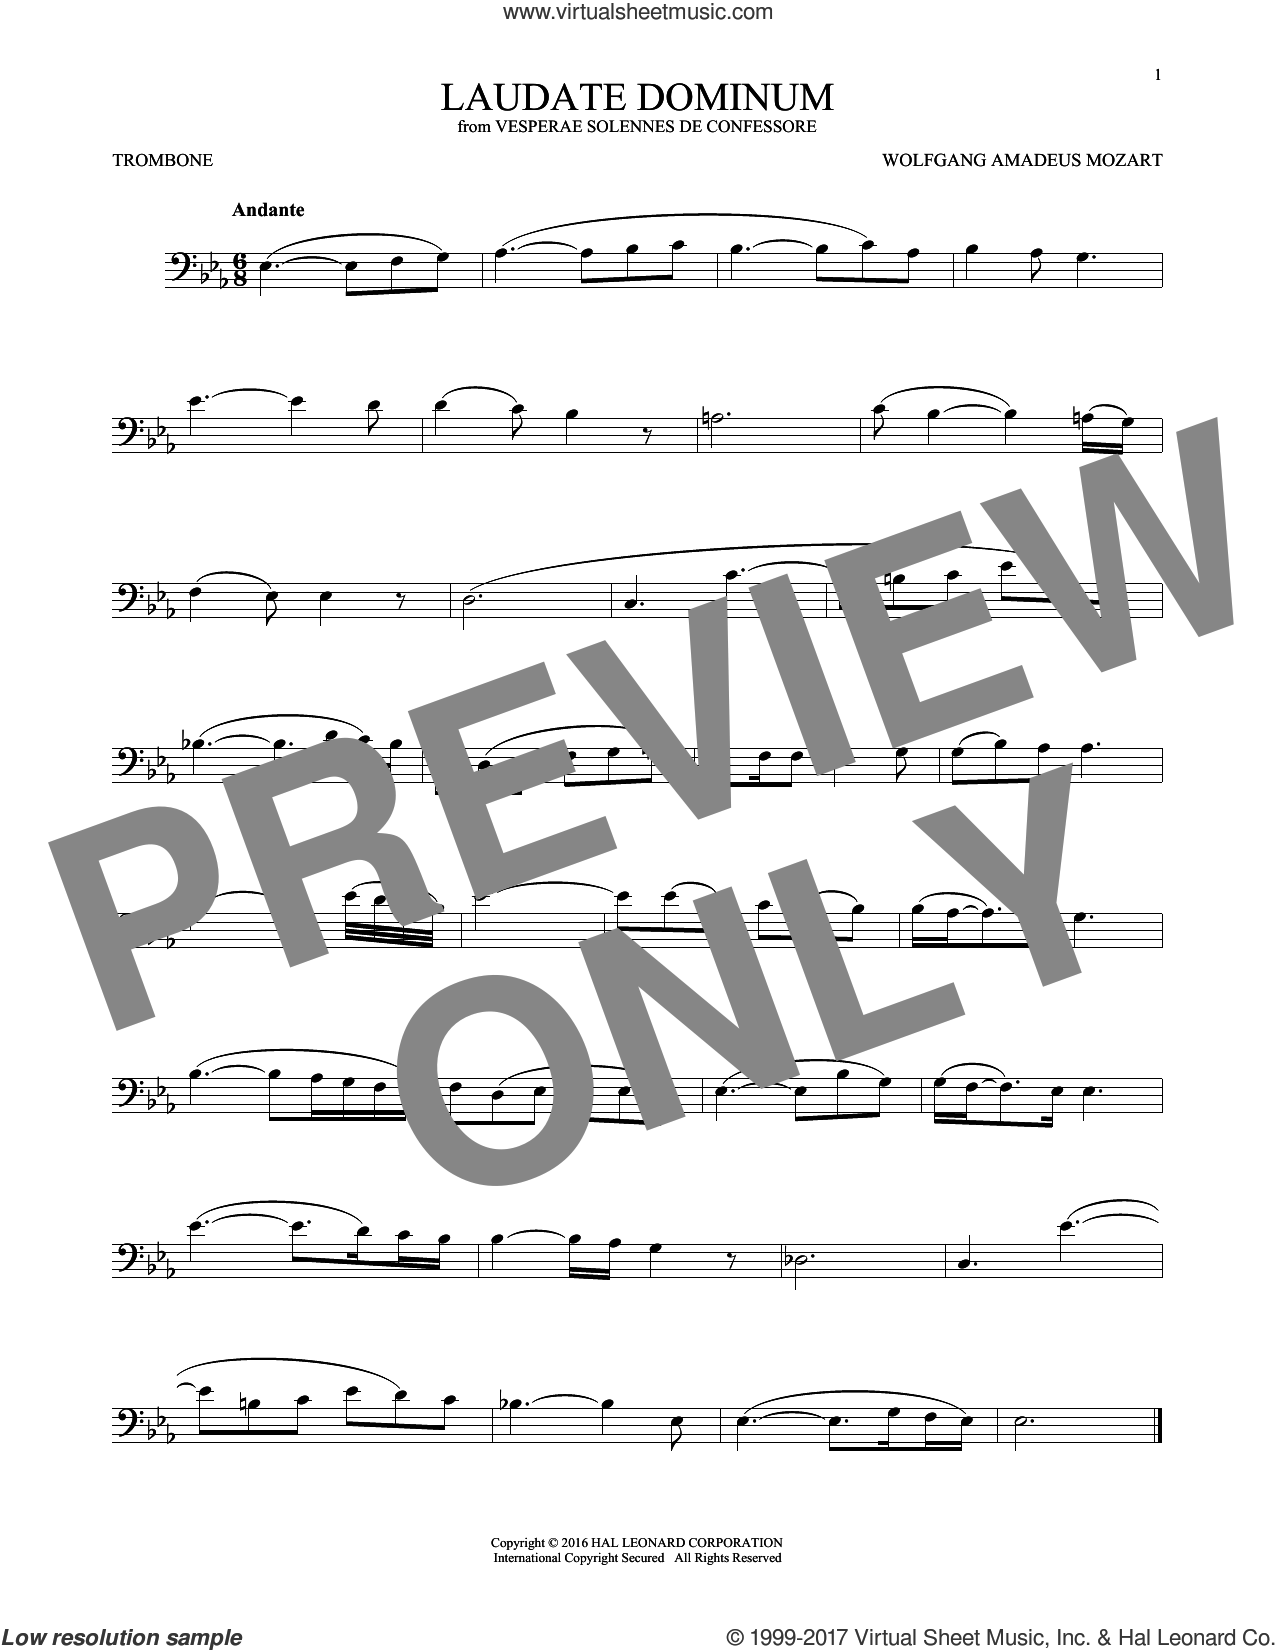 Laudate Dominum sheet music for trombone solo by Wolfgang Amadeus Mozart, classical score, intermediate skill level